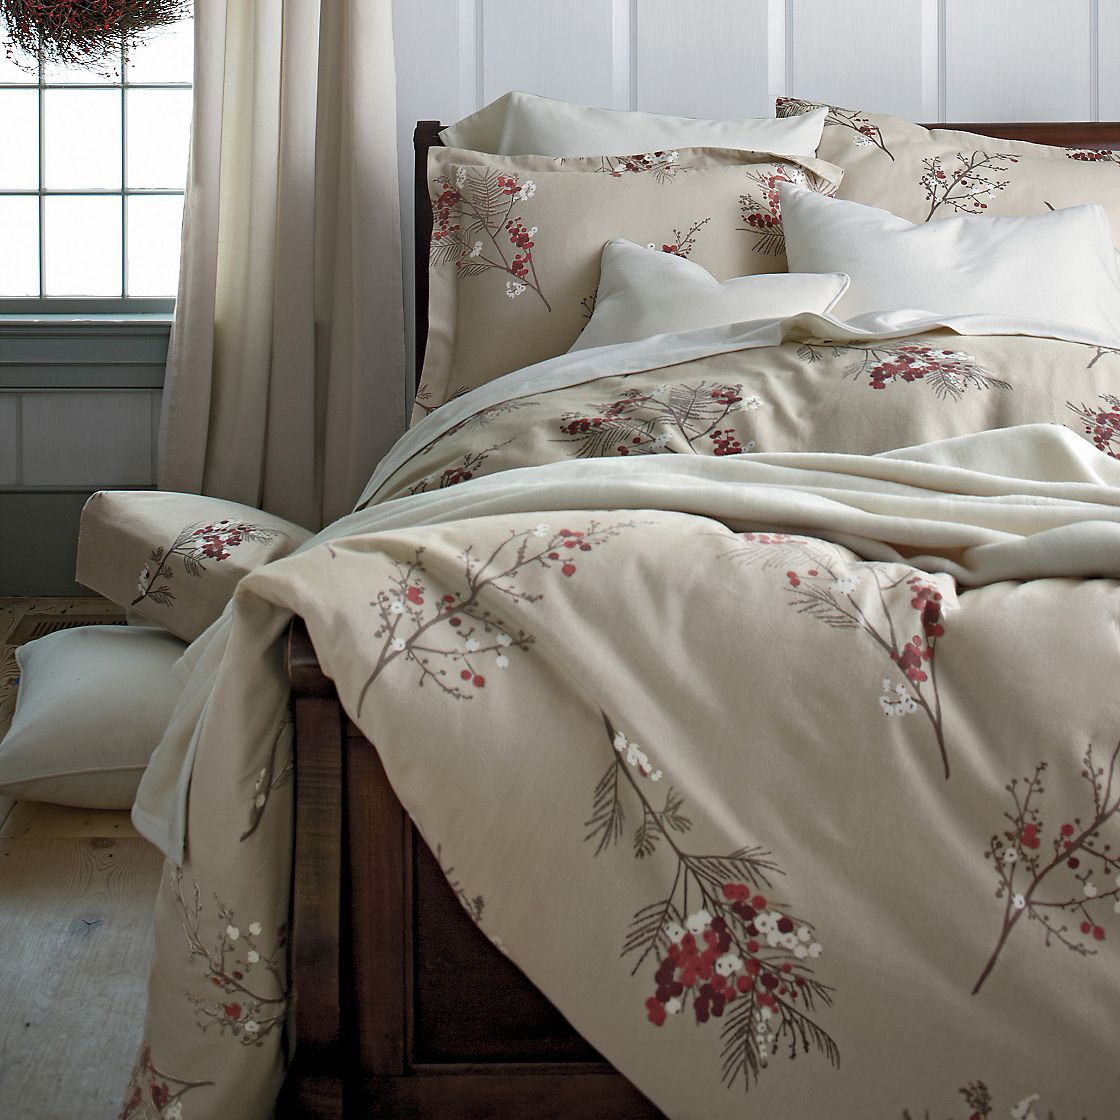 Pineberry Flannel Sheets & Bedding The Company Store